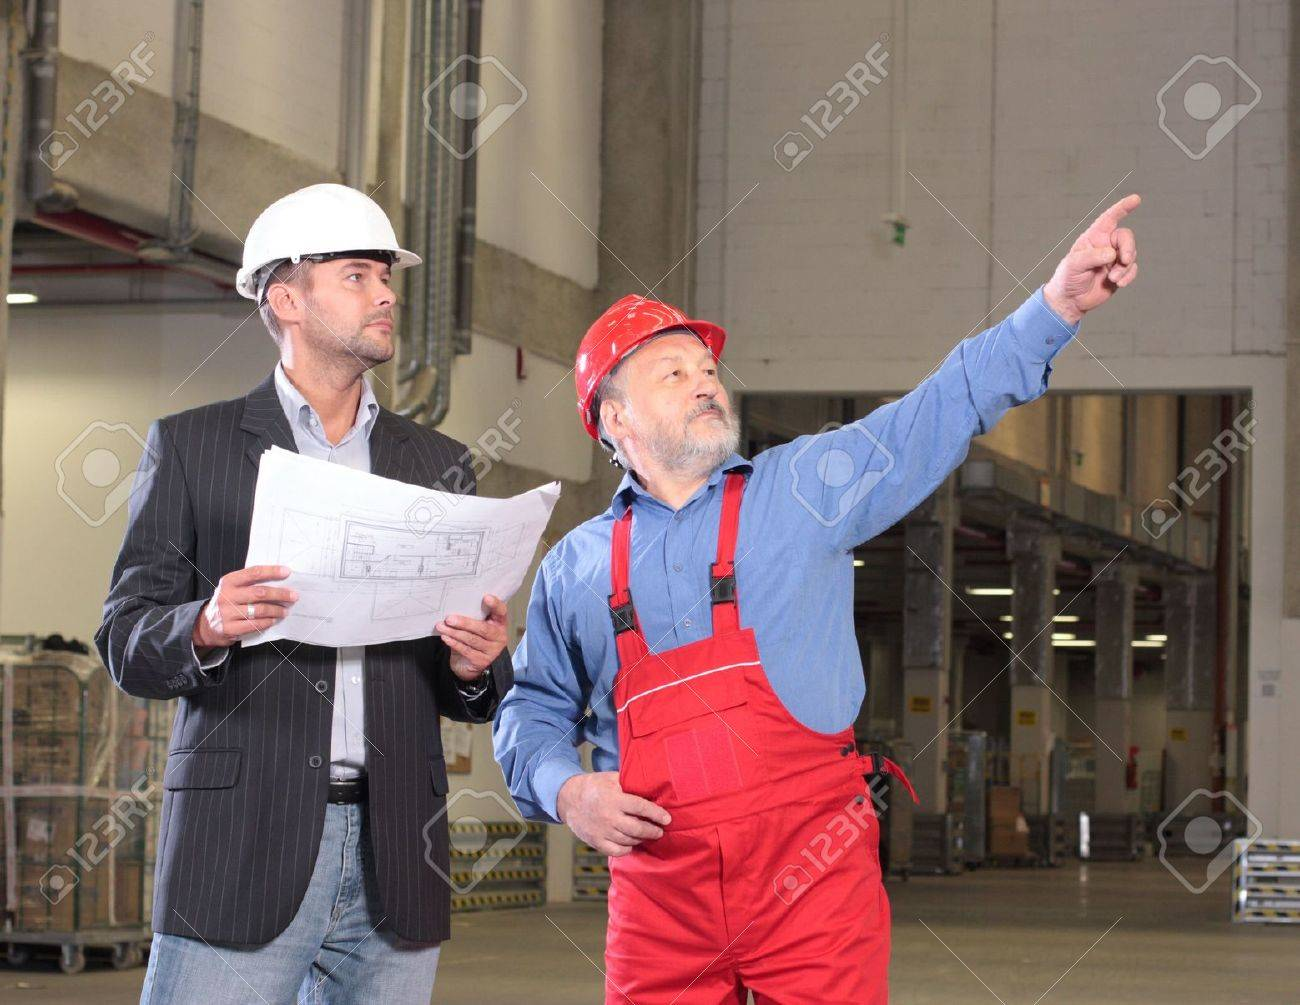 businessmen and older worker, wearing hardhats looking at a set of blueprints and discussing a construction project. Stock Photo - 3246535